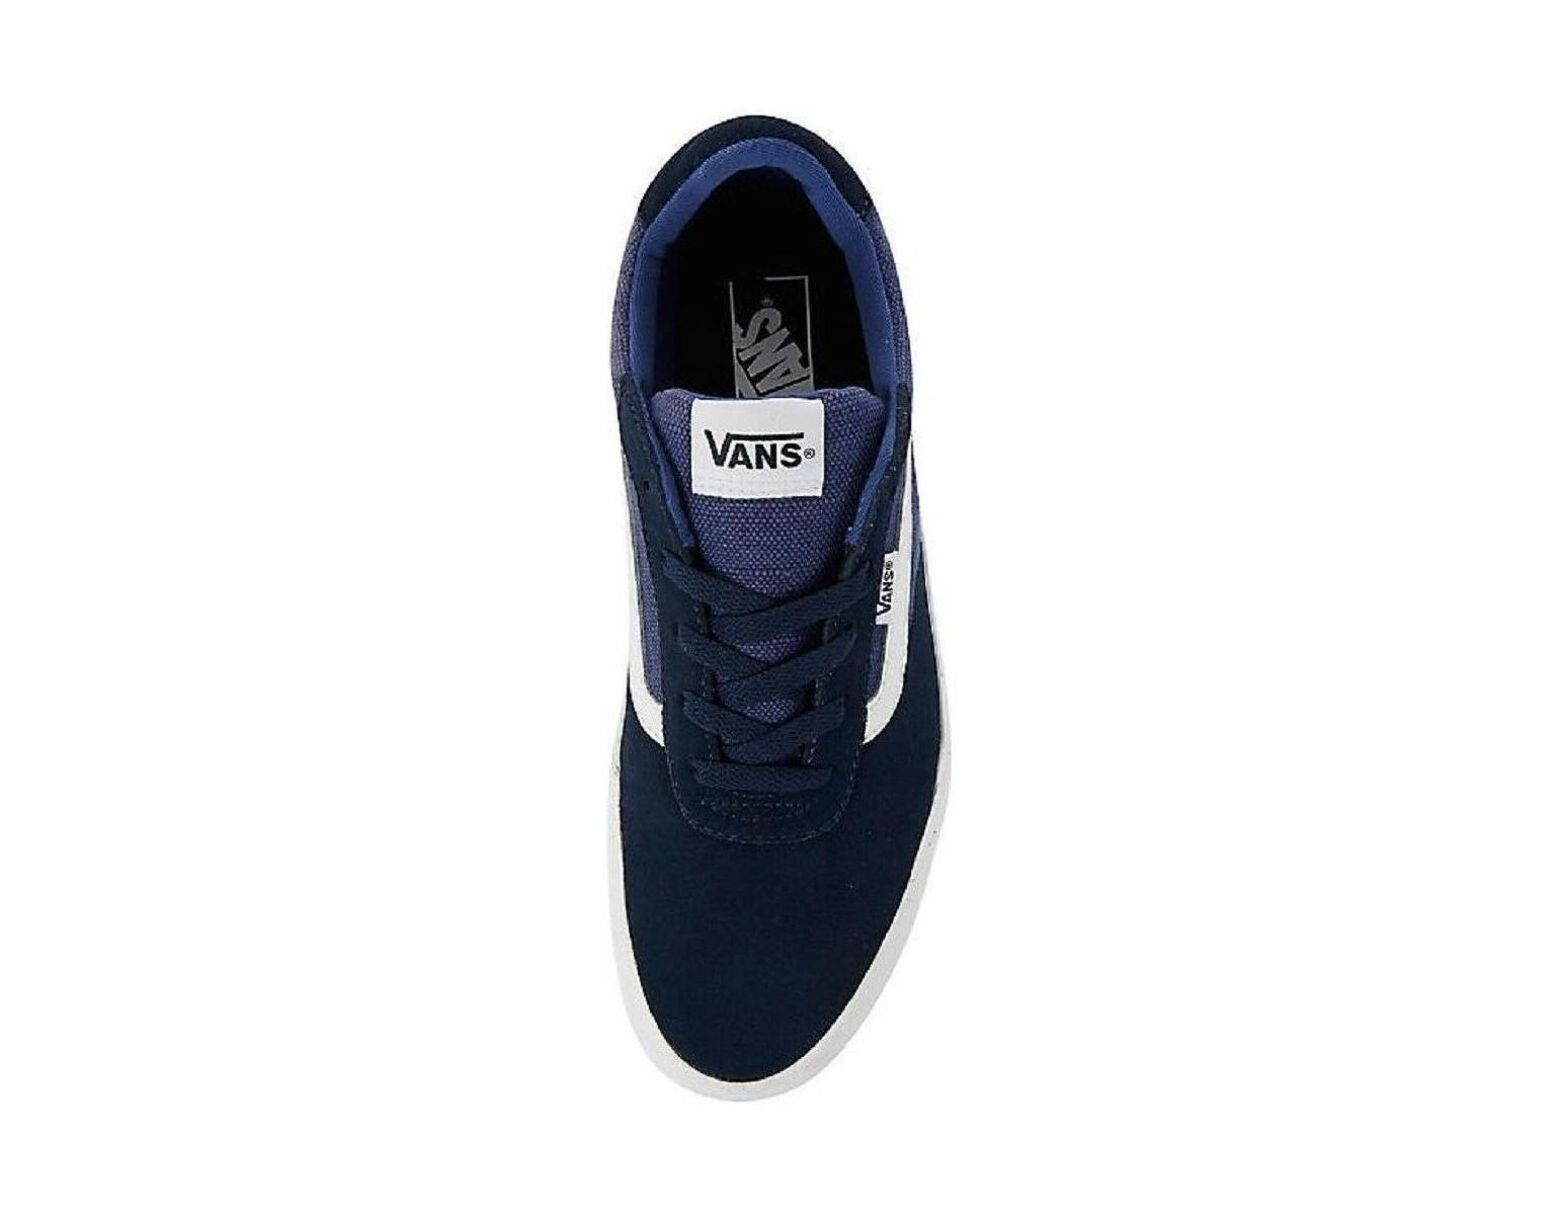 69aaff386 Vans Palomar Ldvg61 Men's Shoes (trainers) In Blue in Blue for Men - Lyst